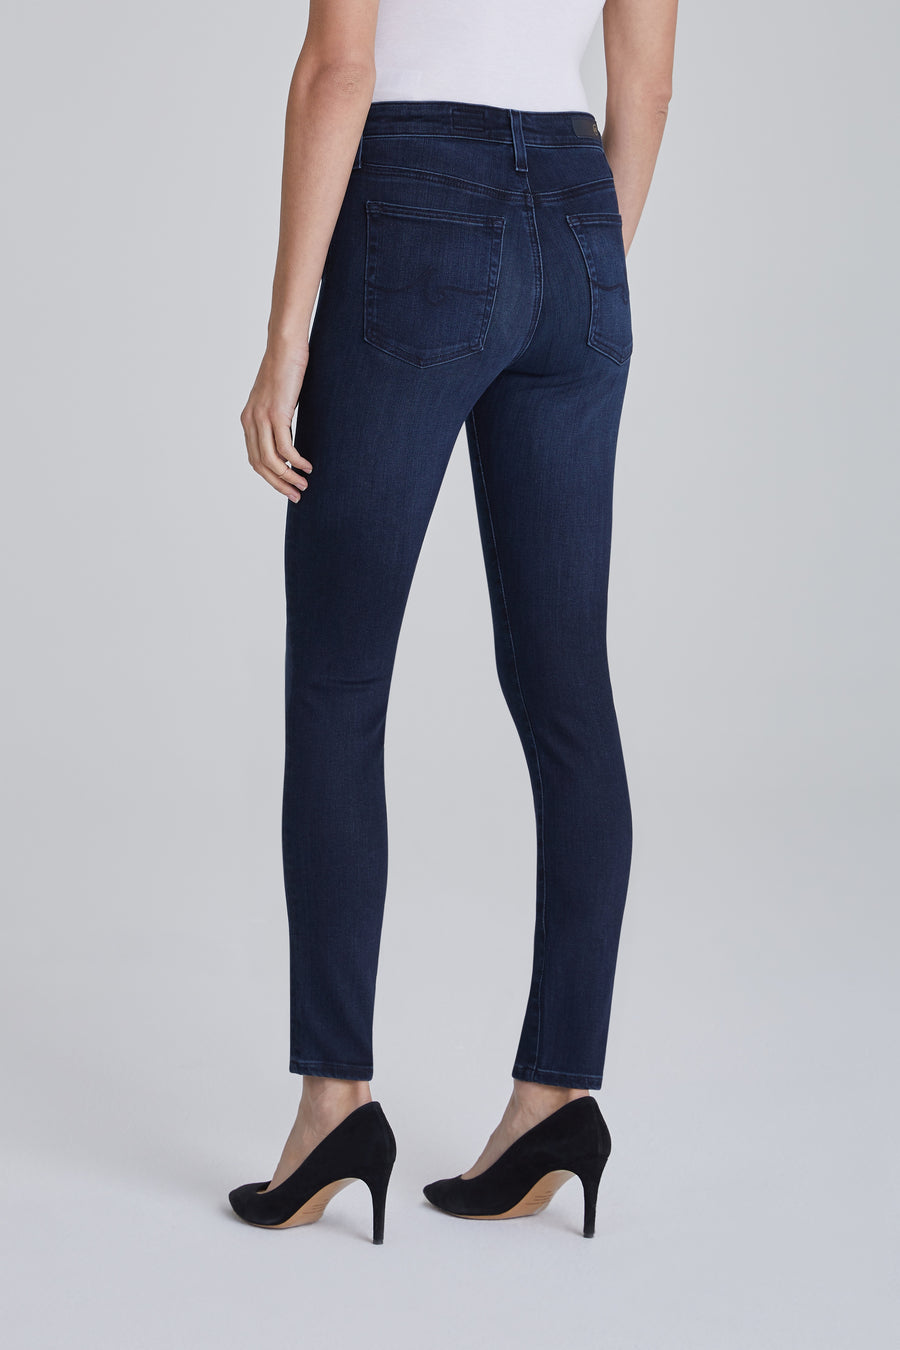 AG Denim Farrah Skinny Ankle - Disarrayed